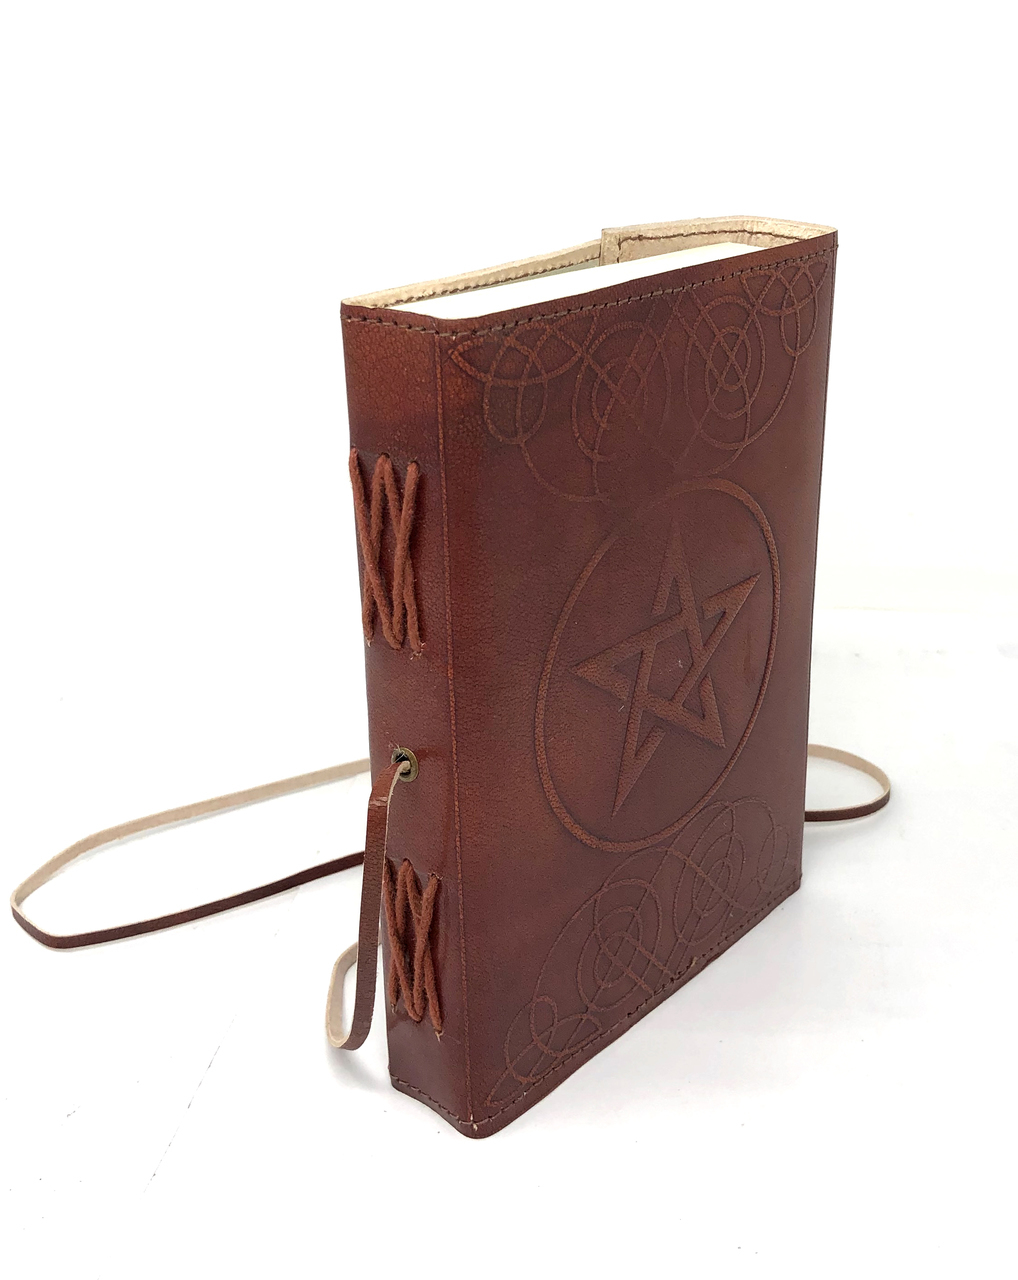 Paper Journal Pentacle $26.99